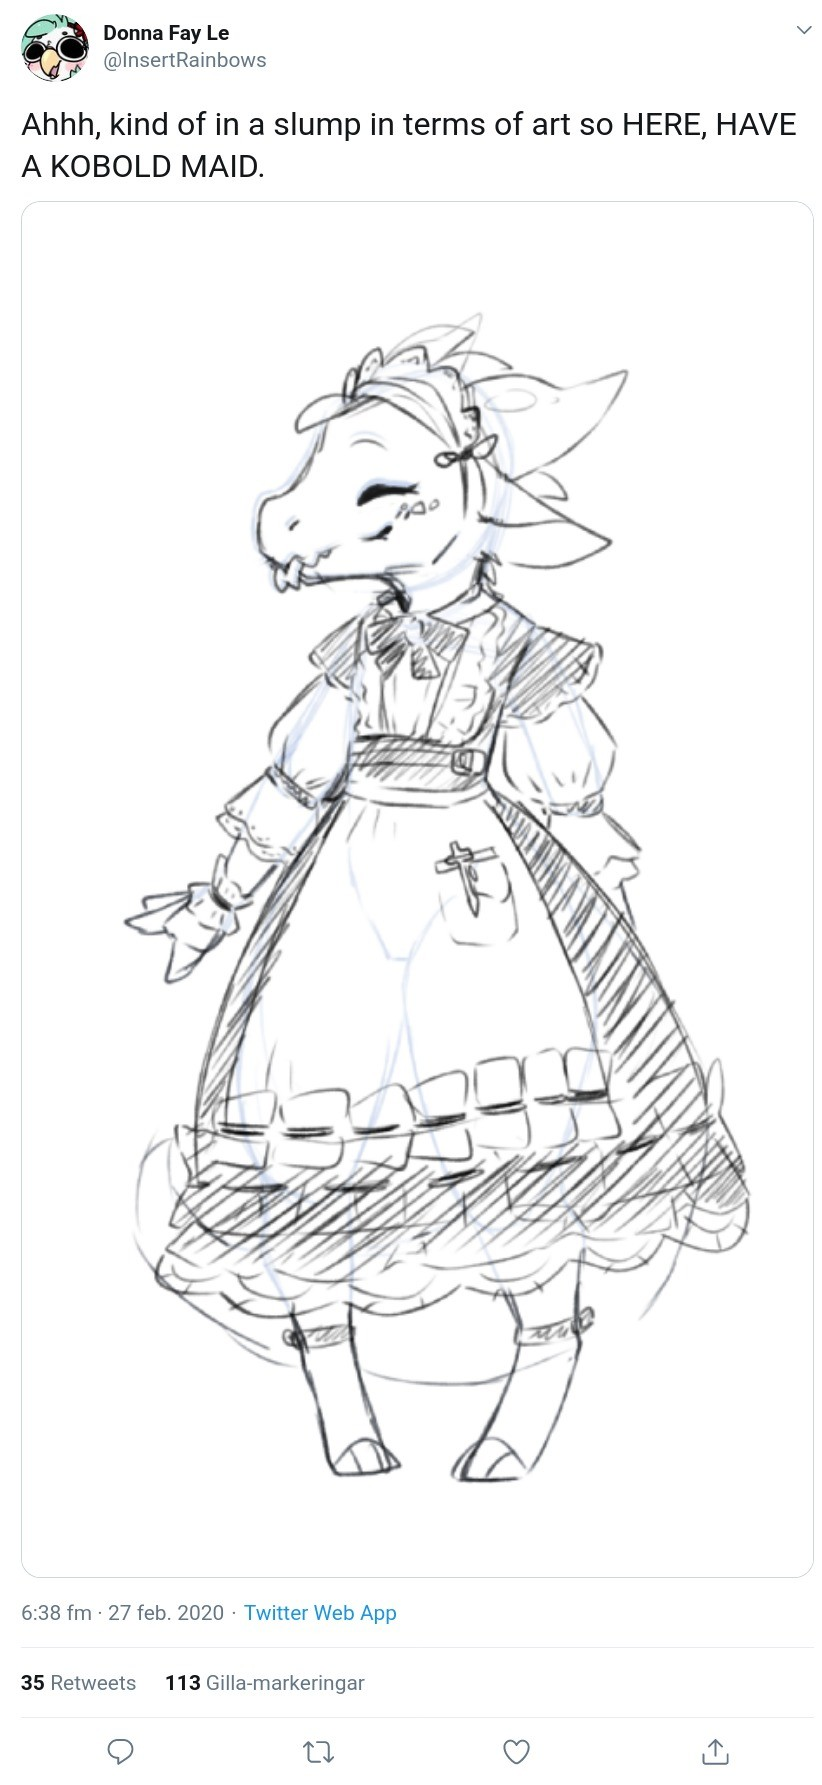 A 'Bold Maid.. .. She does not know what a maid is, but she thinks the dress is pretty. You try to explain the concept of housekeeping, but when left alone she rearranges the fur